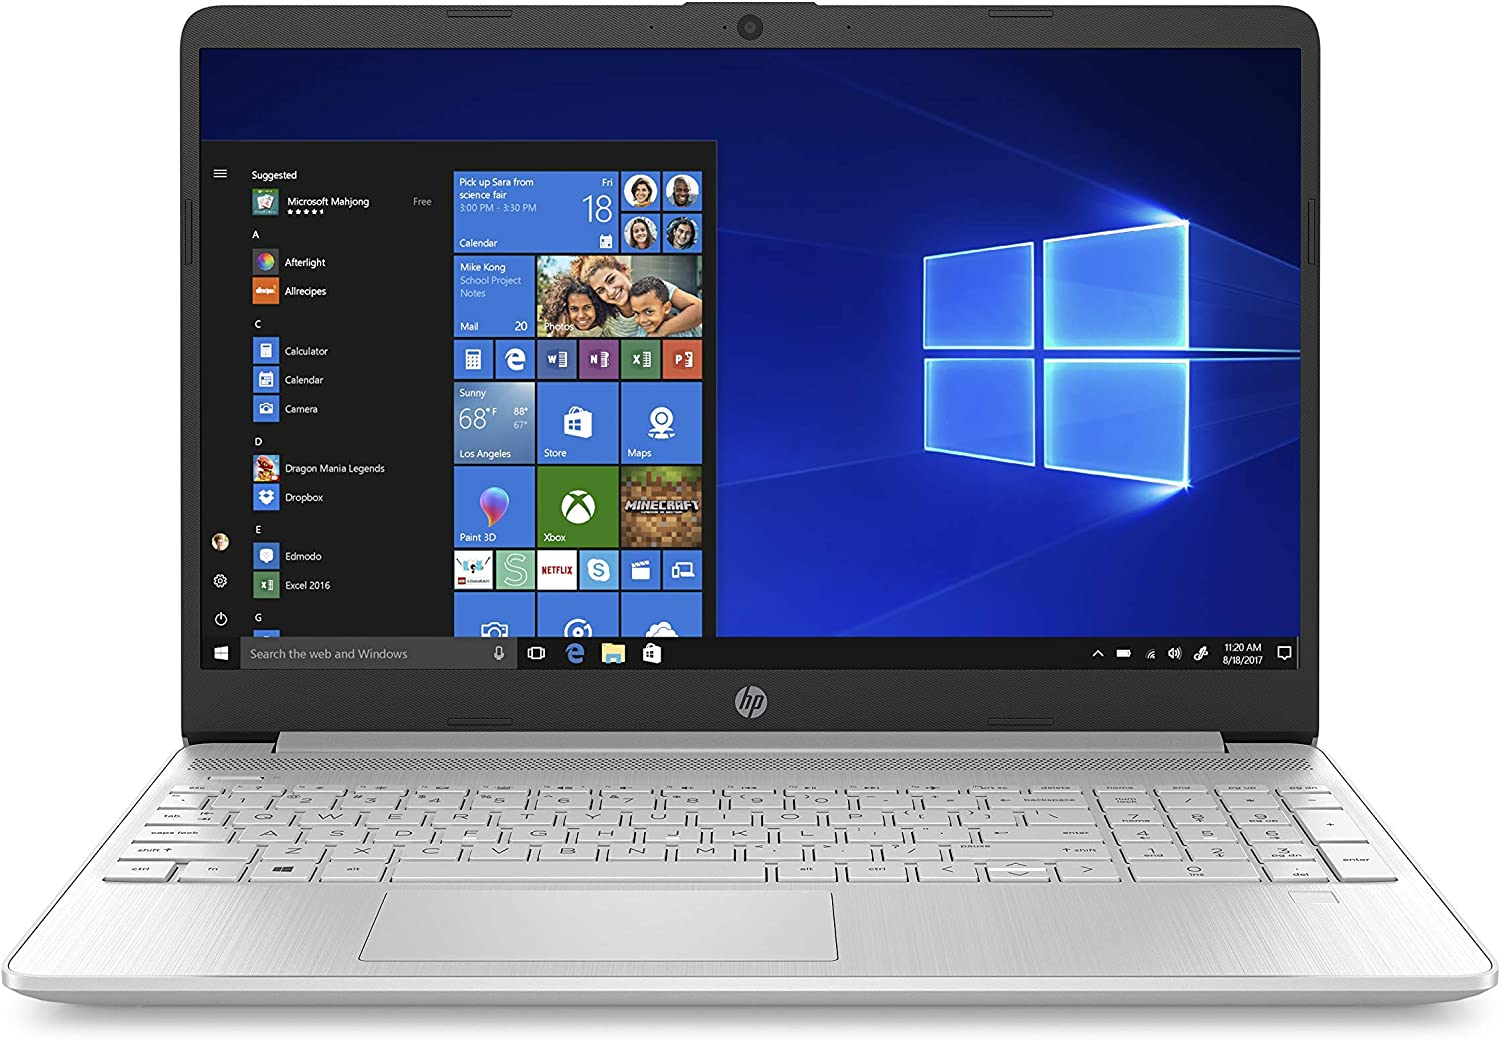 HP 15-Inch HD Touchscreen Laptop, 10th Gen Intel Core i3-1005G1, 4 GB SDRAM, 128 GB Solid-State Drive, Windows 10 Home in S Mode (15-dy1010nr, Natural Silver), 15-15.99 inches (Renewed)